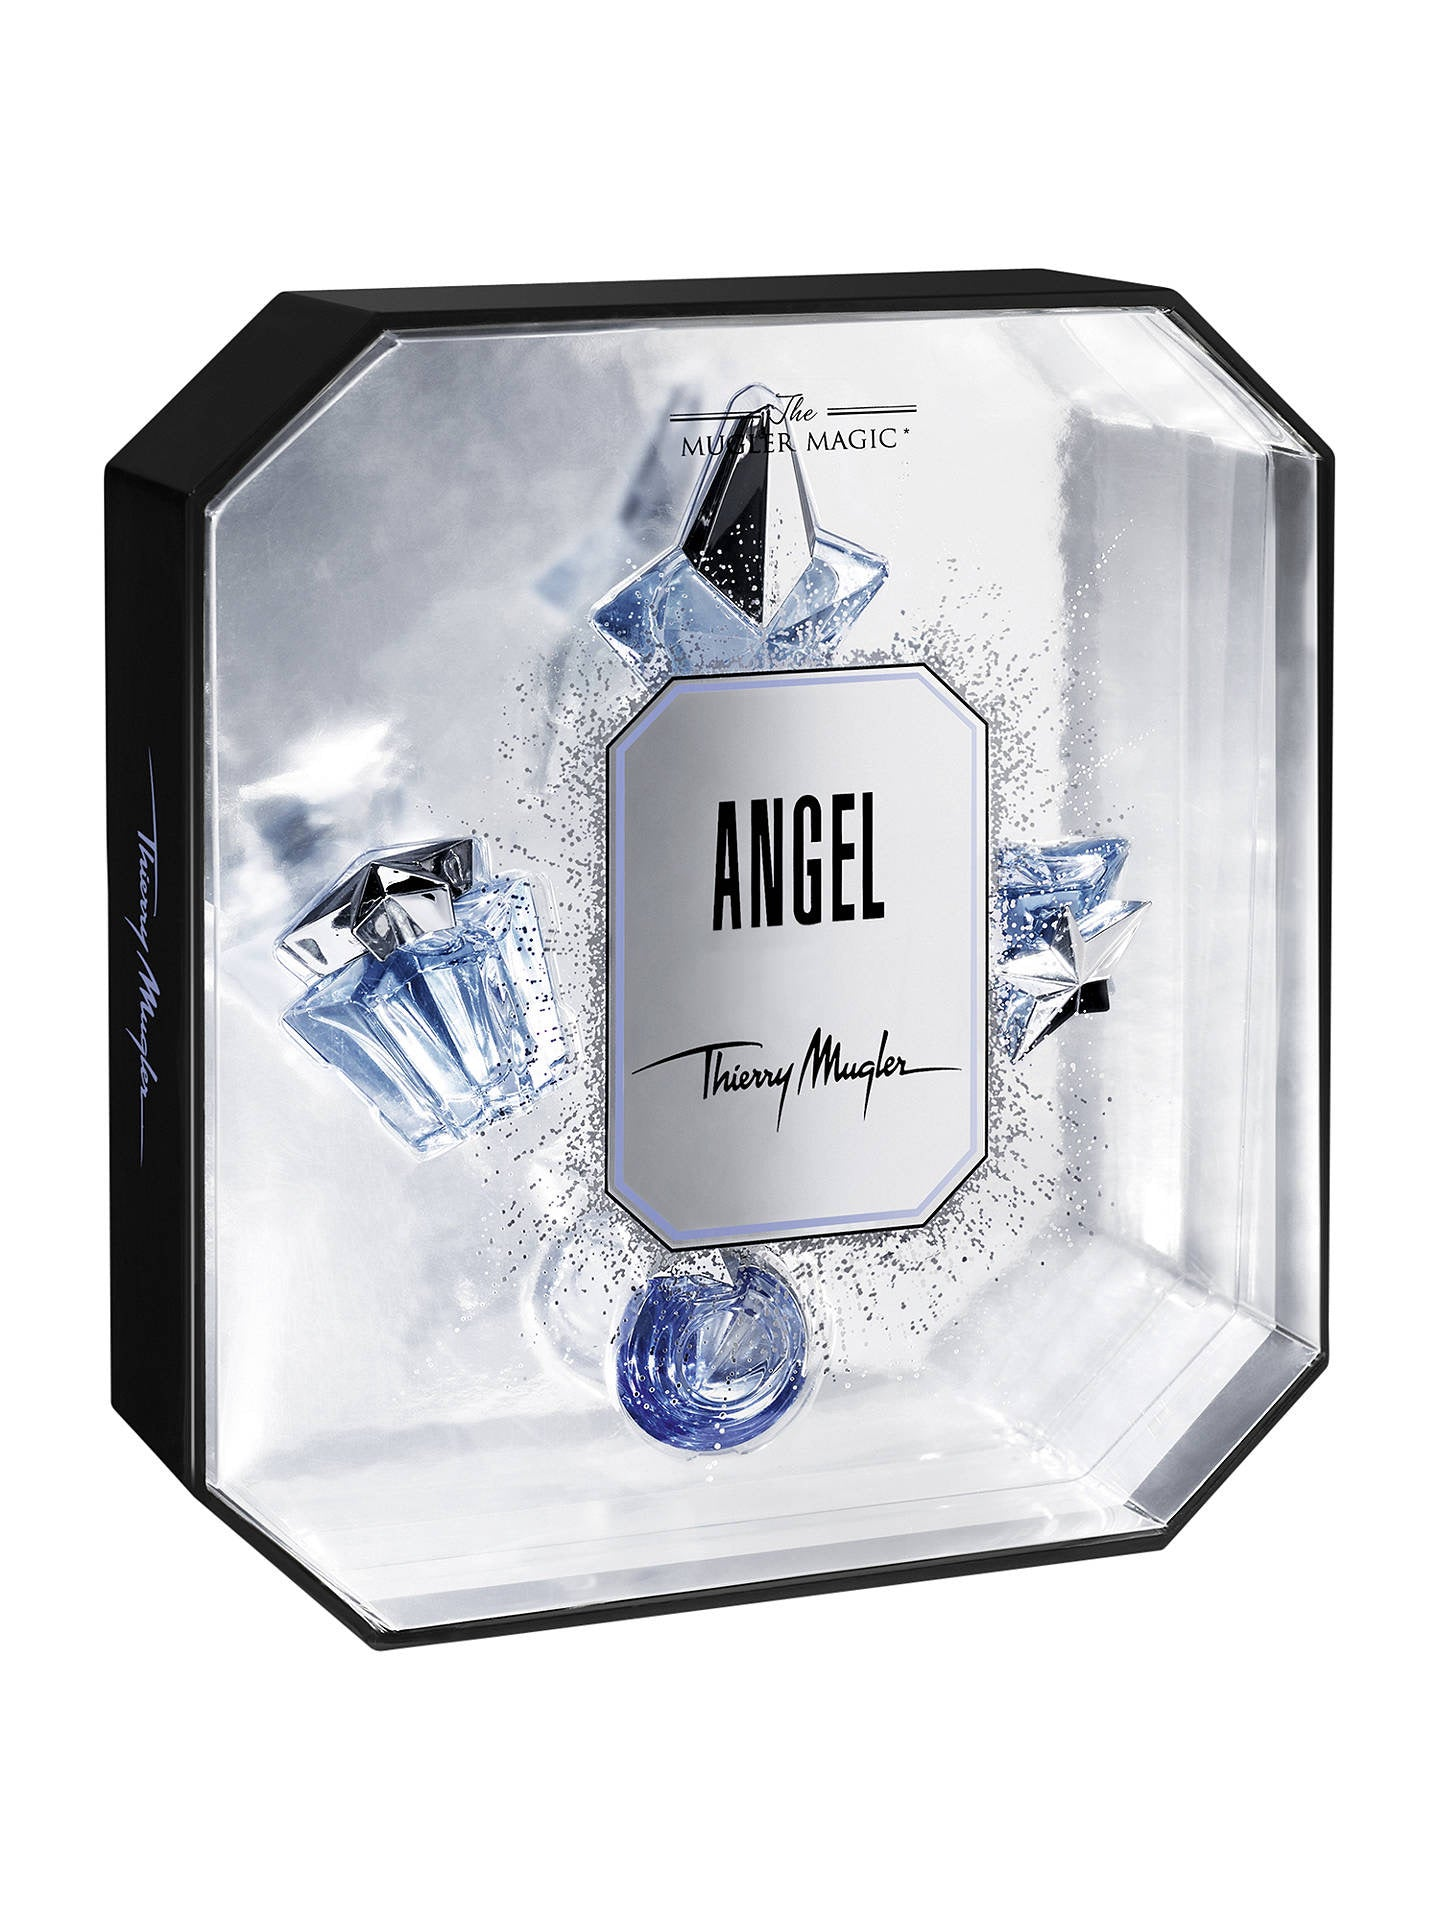 Thierry Mugler Angel Miniature Collection